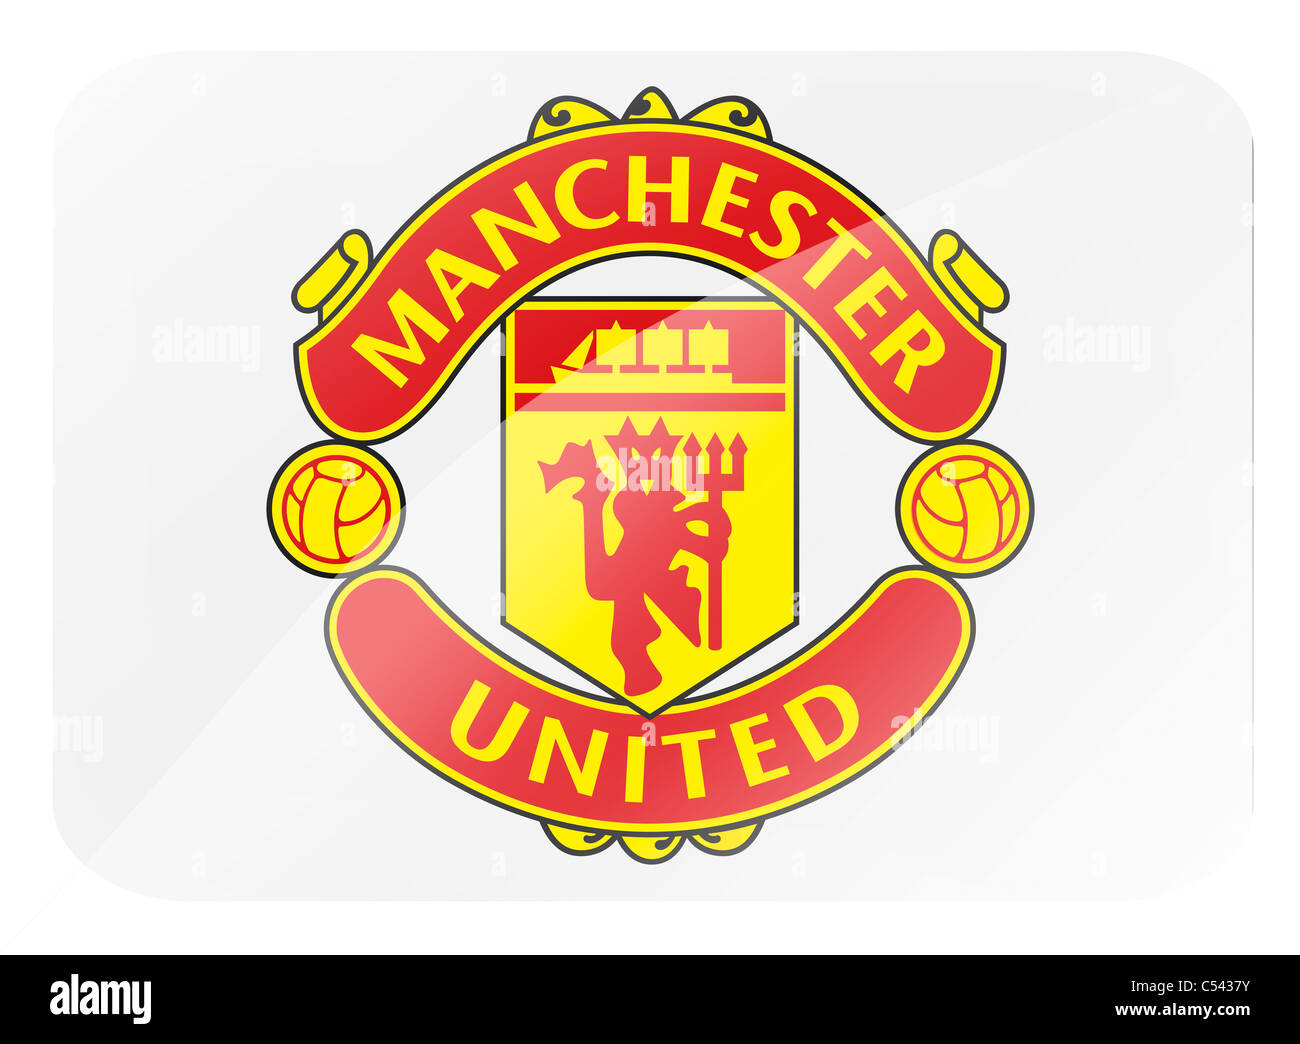 Manchester united flag logo symbol icon stock photo 37584399 alamy manchester united flag logo symbol icon voltagebd Image collections